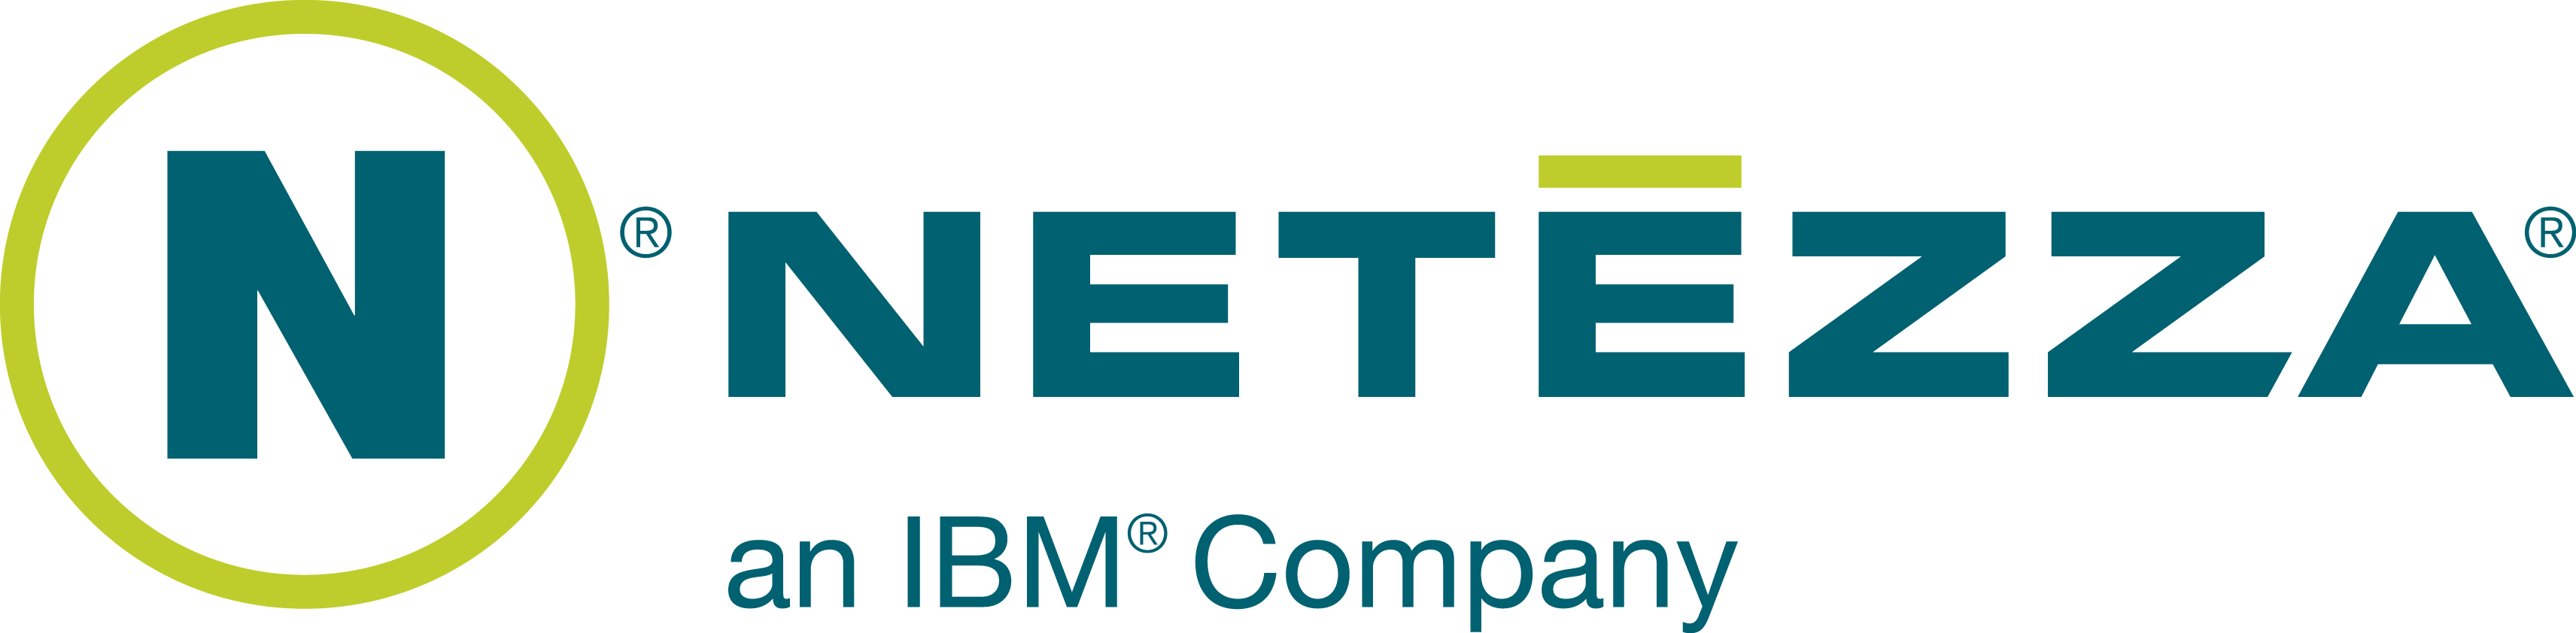 Netezza, an IBM Company